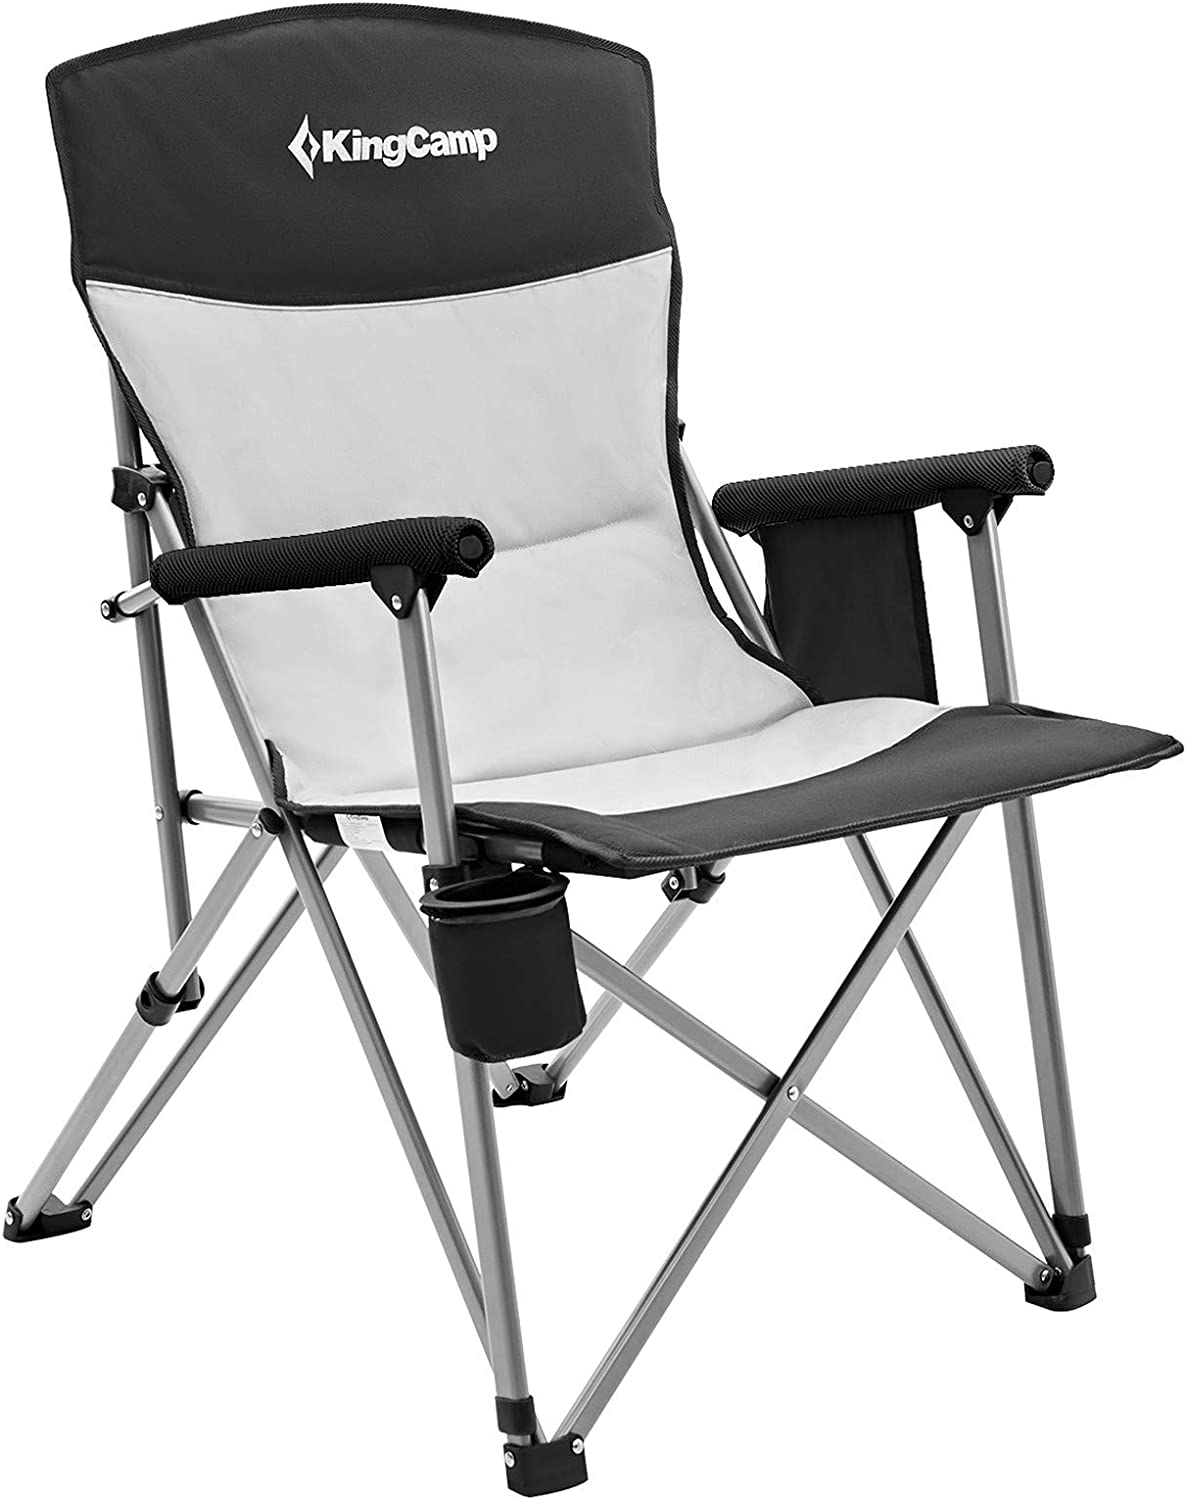 KingCamp Camping New product!! Chair Hard Arm Max 59% OFF Back High Camp Folding Erg